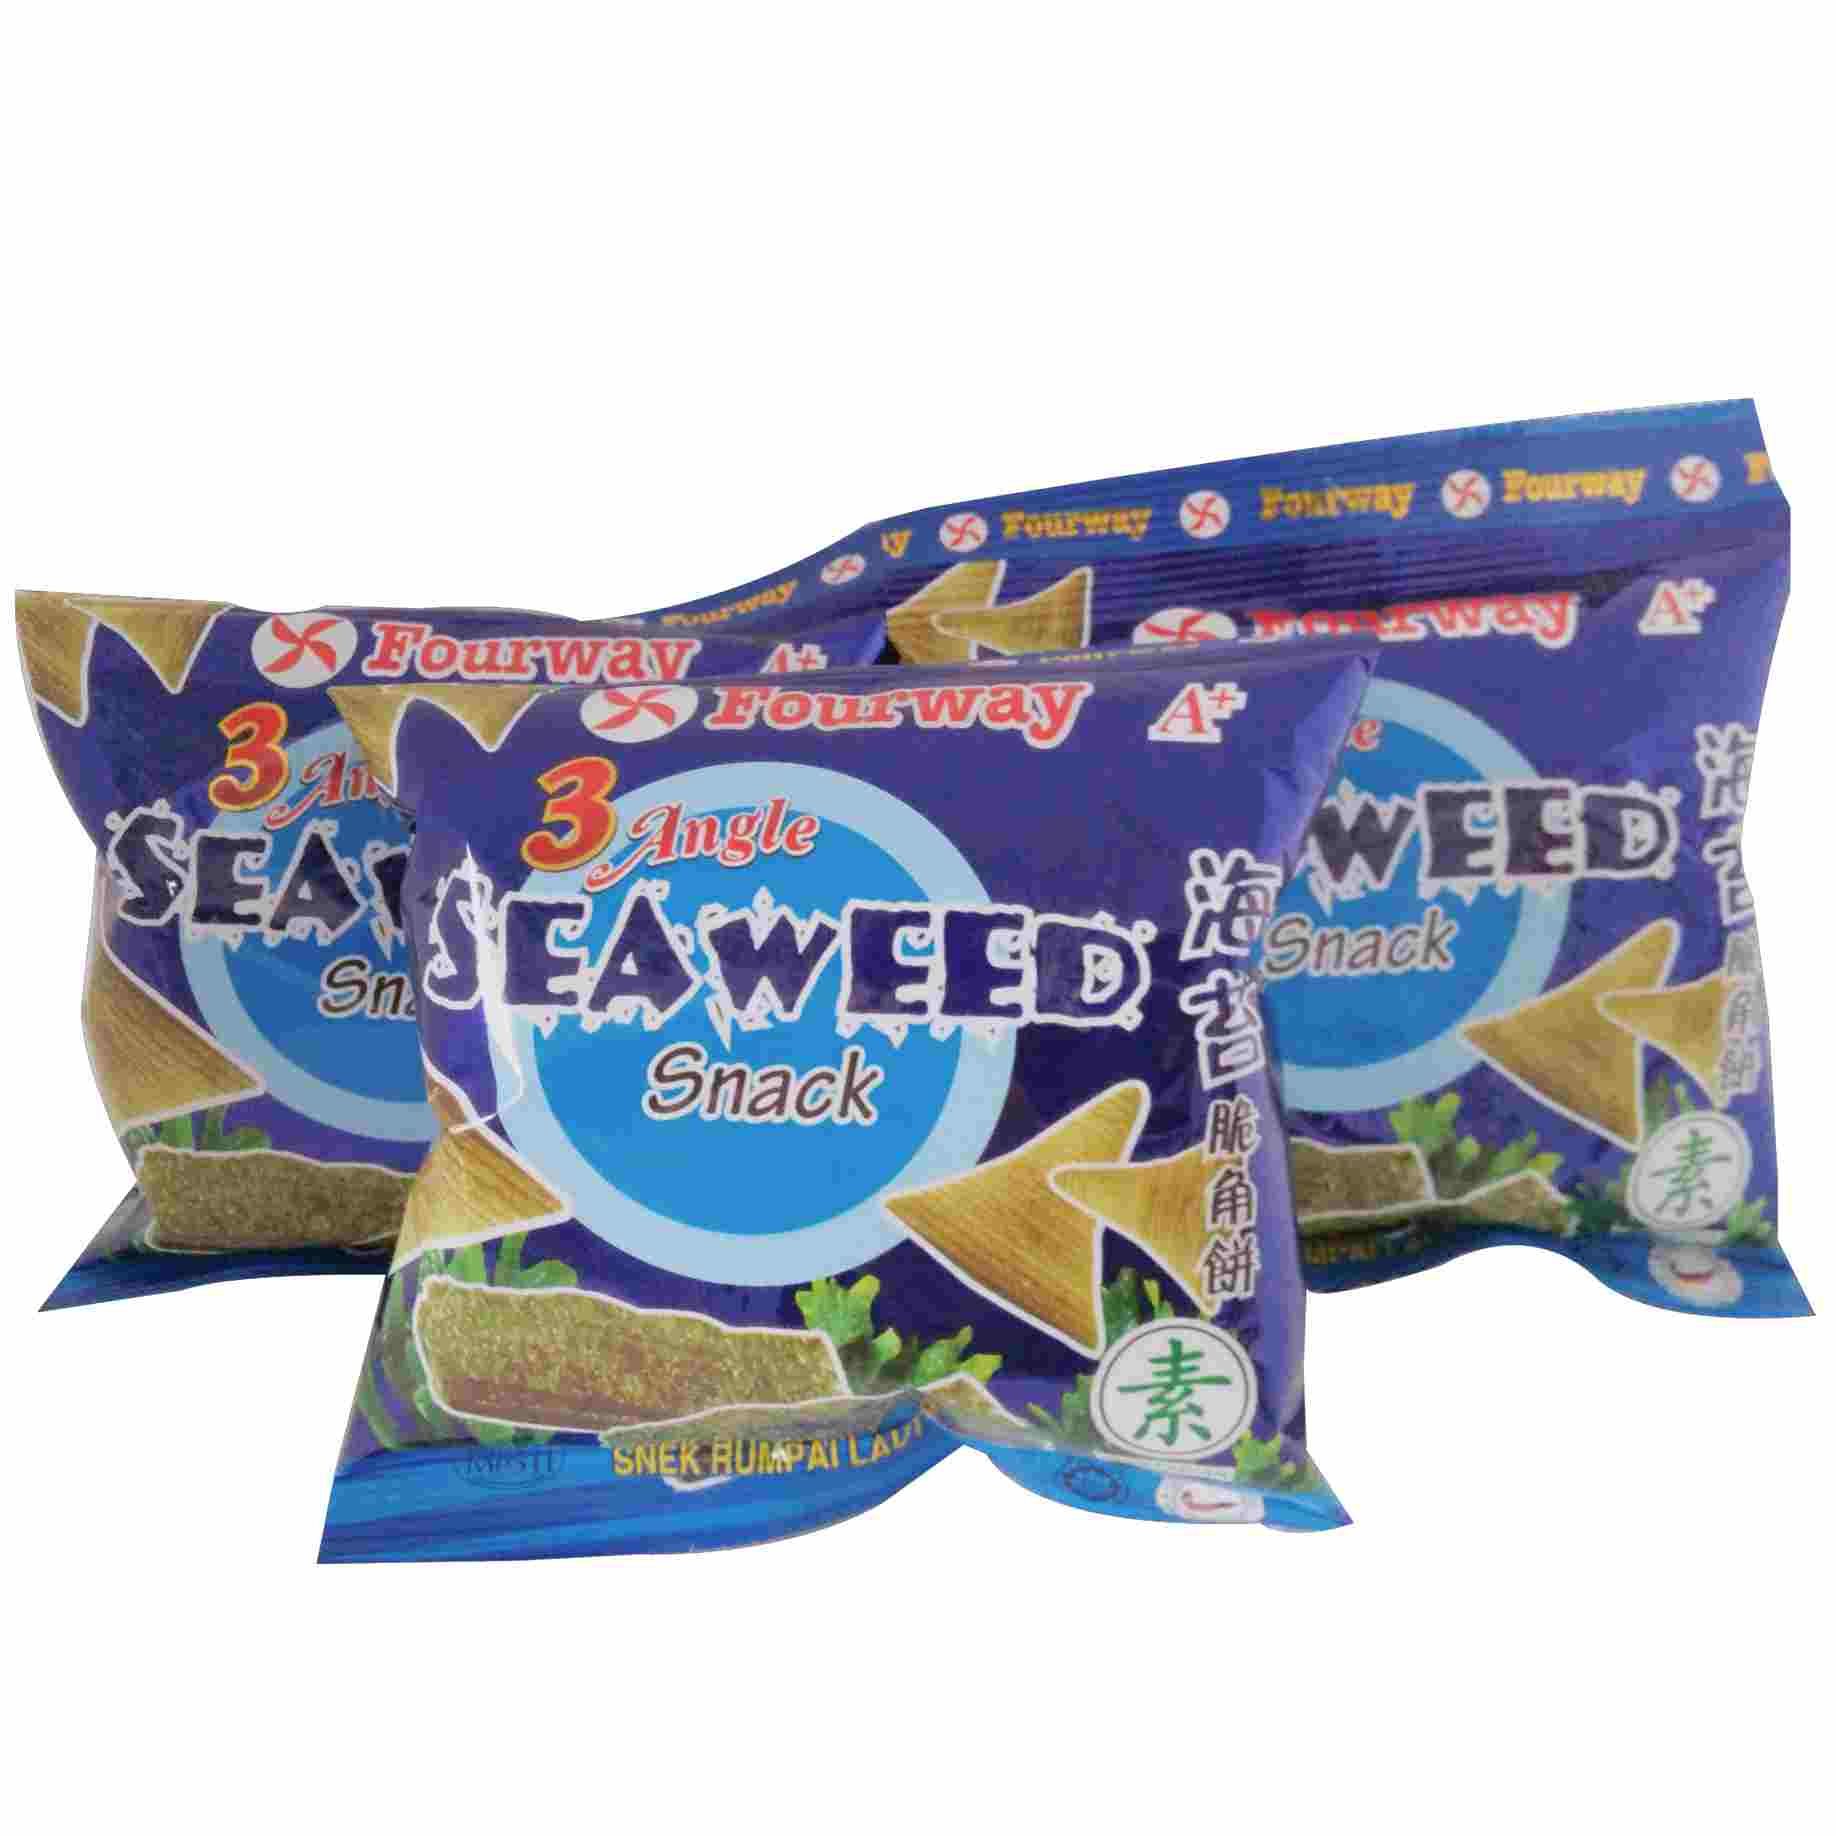 Image SEAWEED SNACK 海苔脆角饼 (3packets)75grams